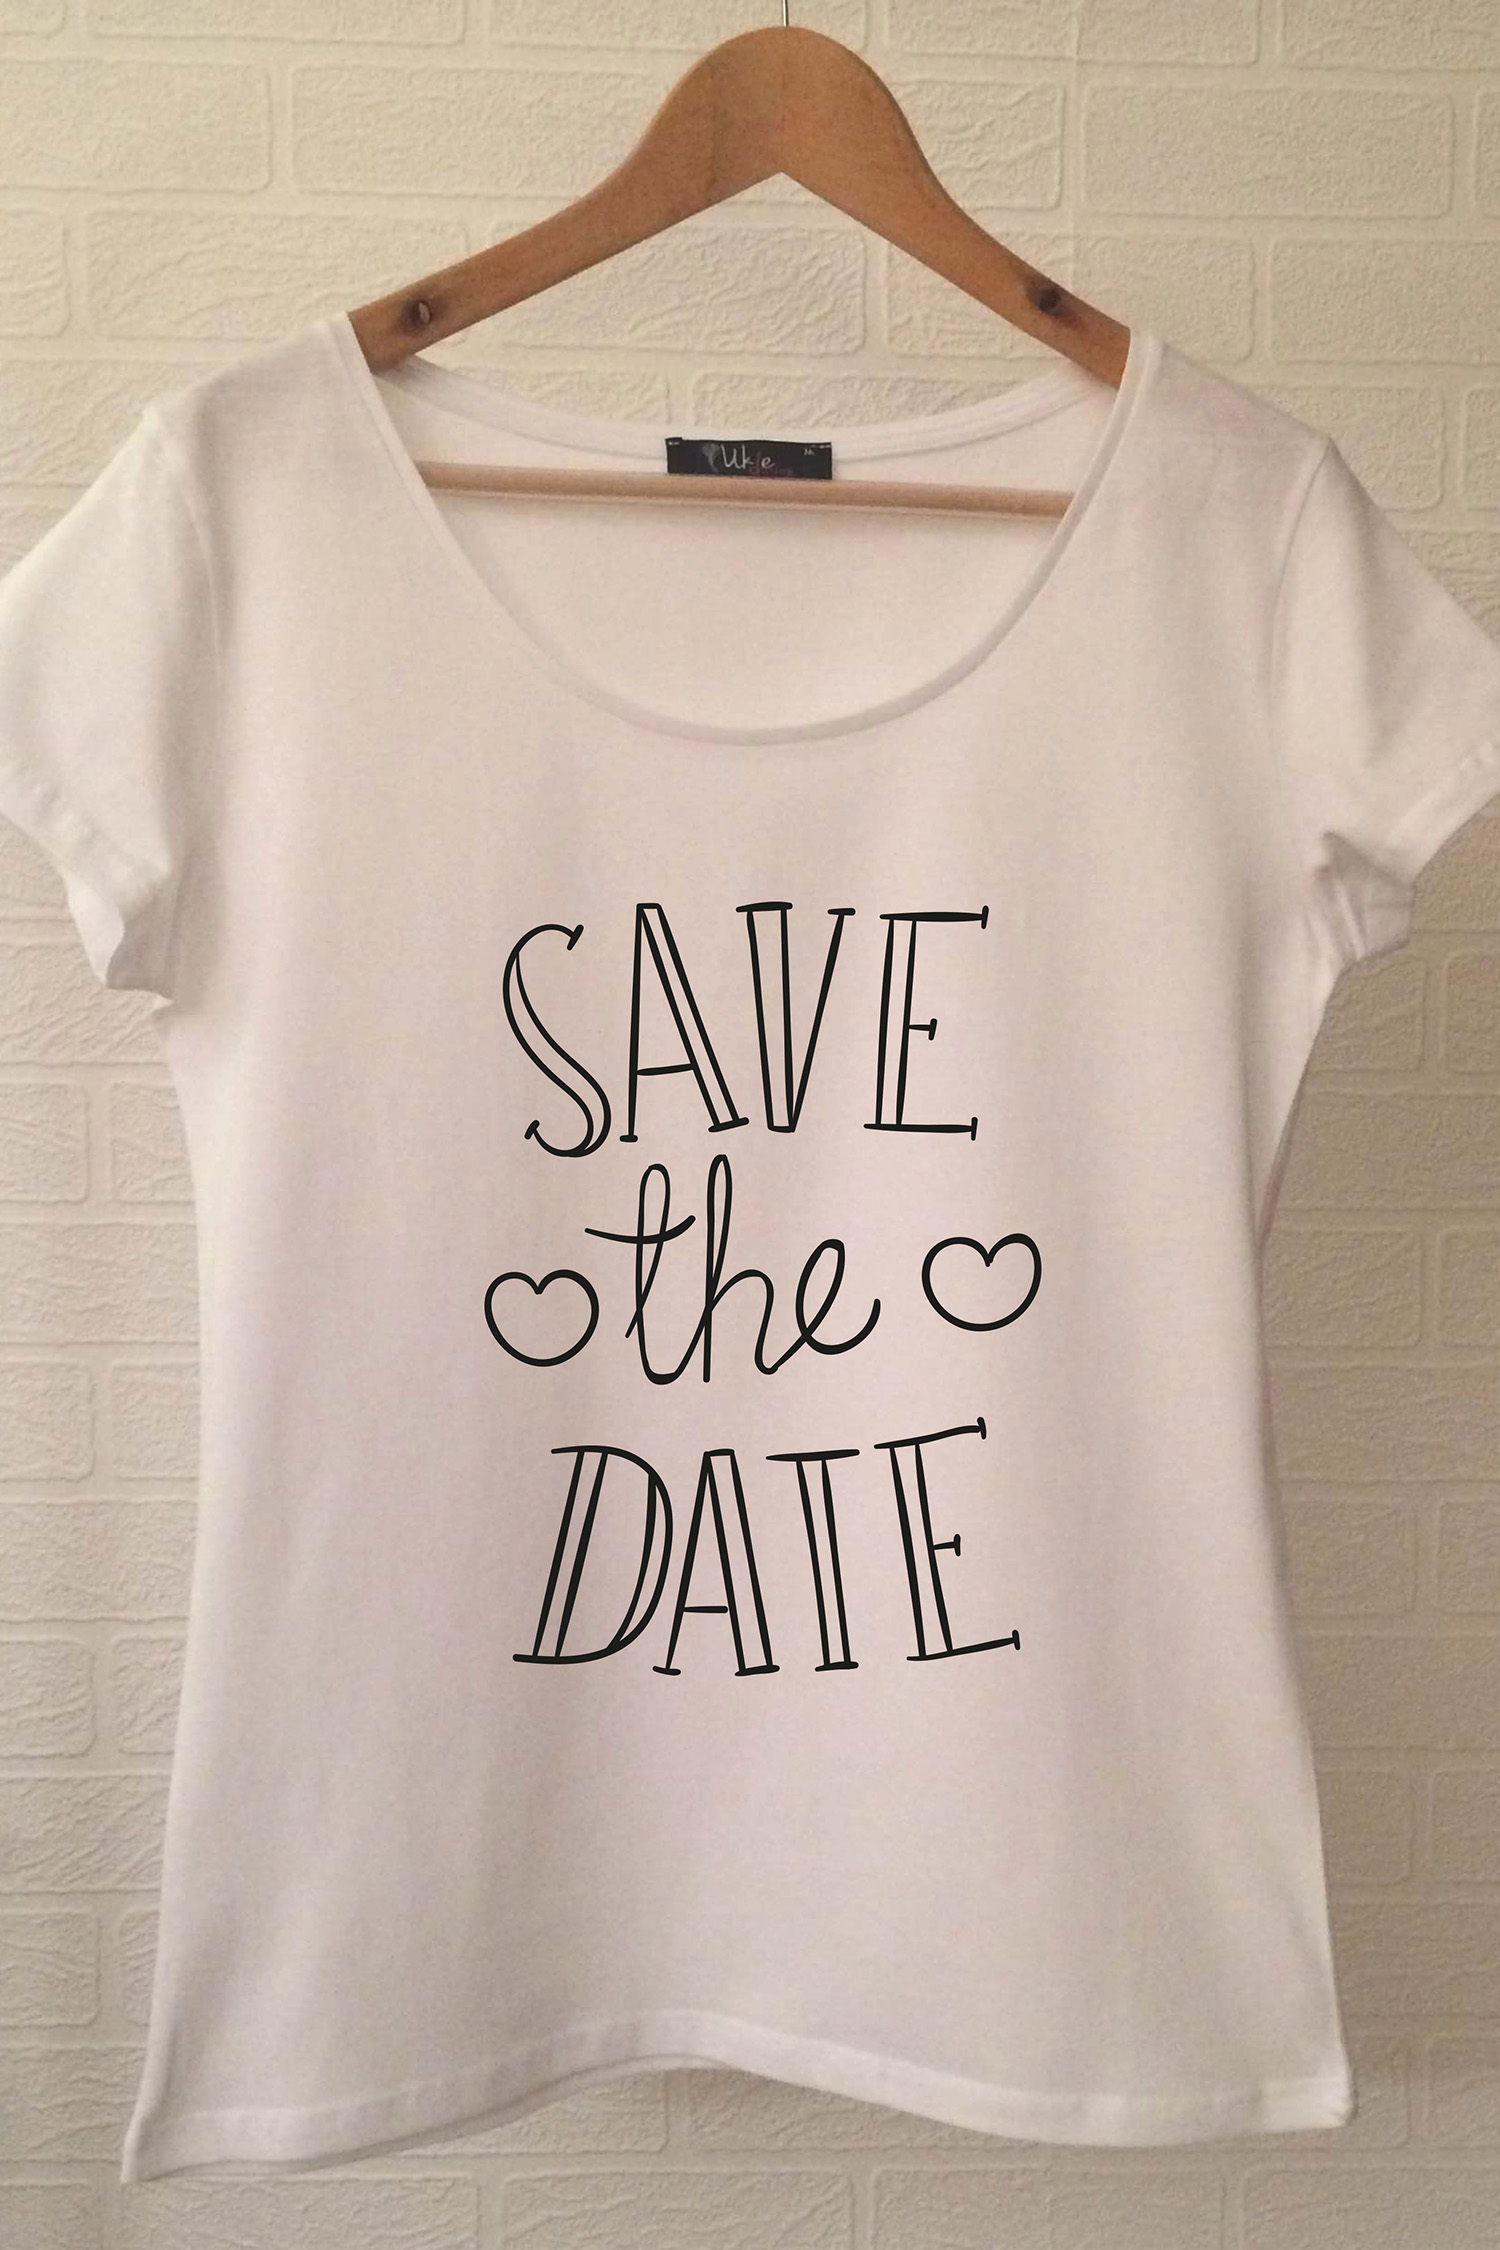 Save The Date T-shirt ukde66